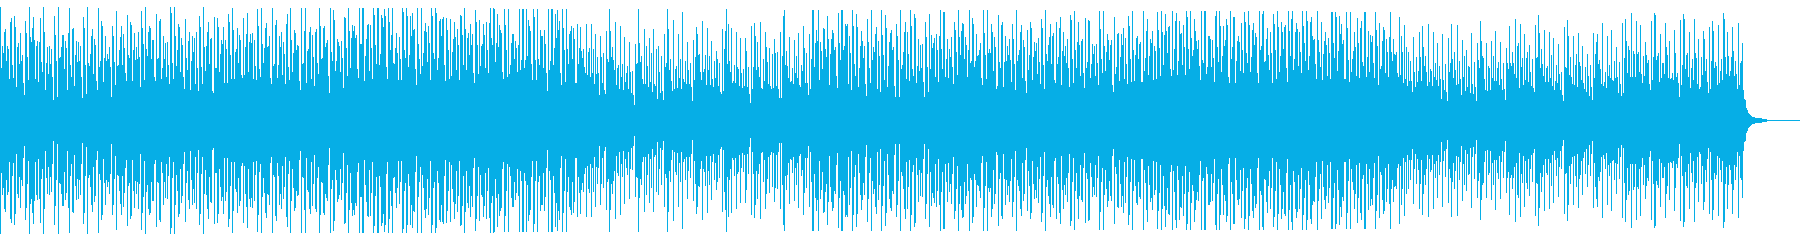 Corporate VP34 Pop Cool CM's reproduced waveform